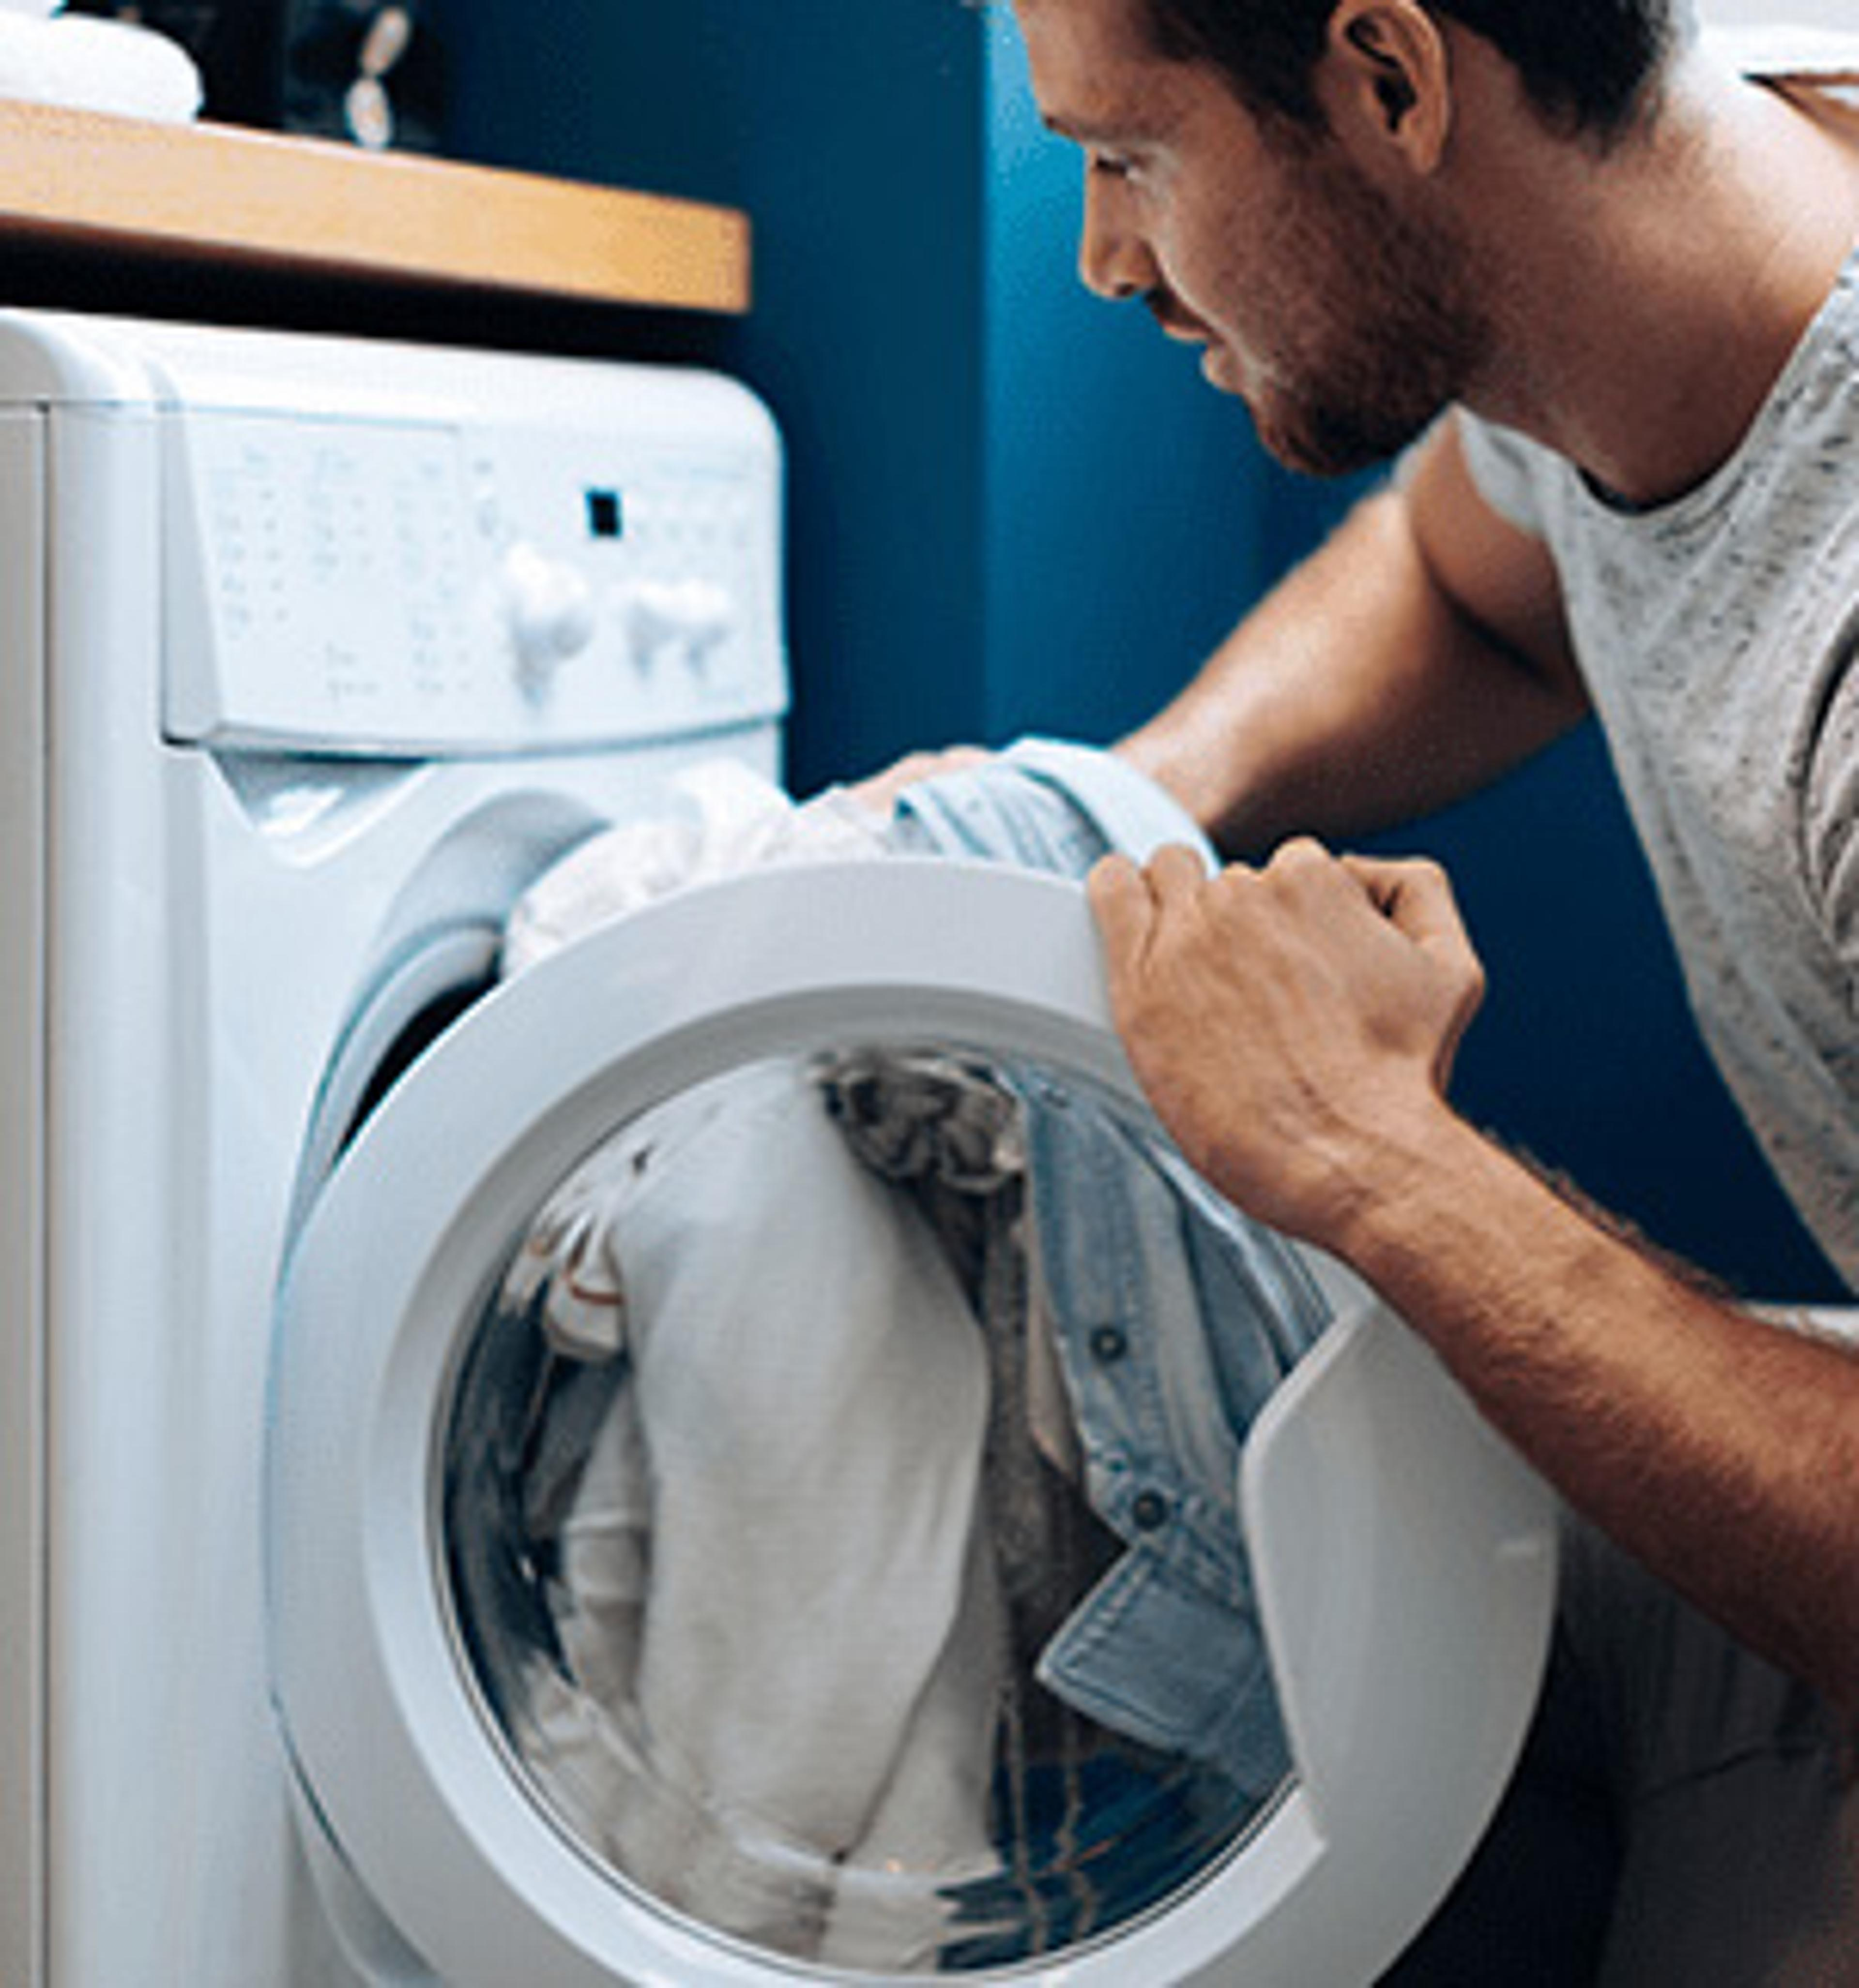 """in reduced detergent costs when washing laundry, hair and body in soft water<small class=""""superscript"""">2</small>"""